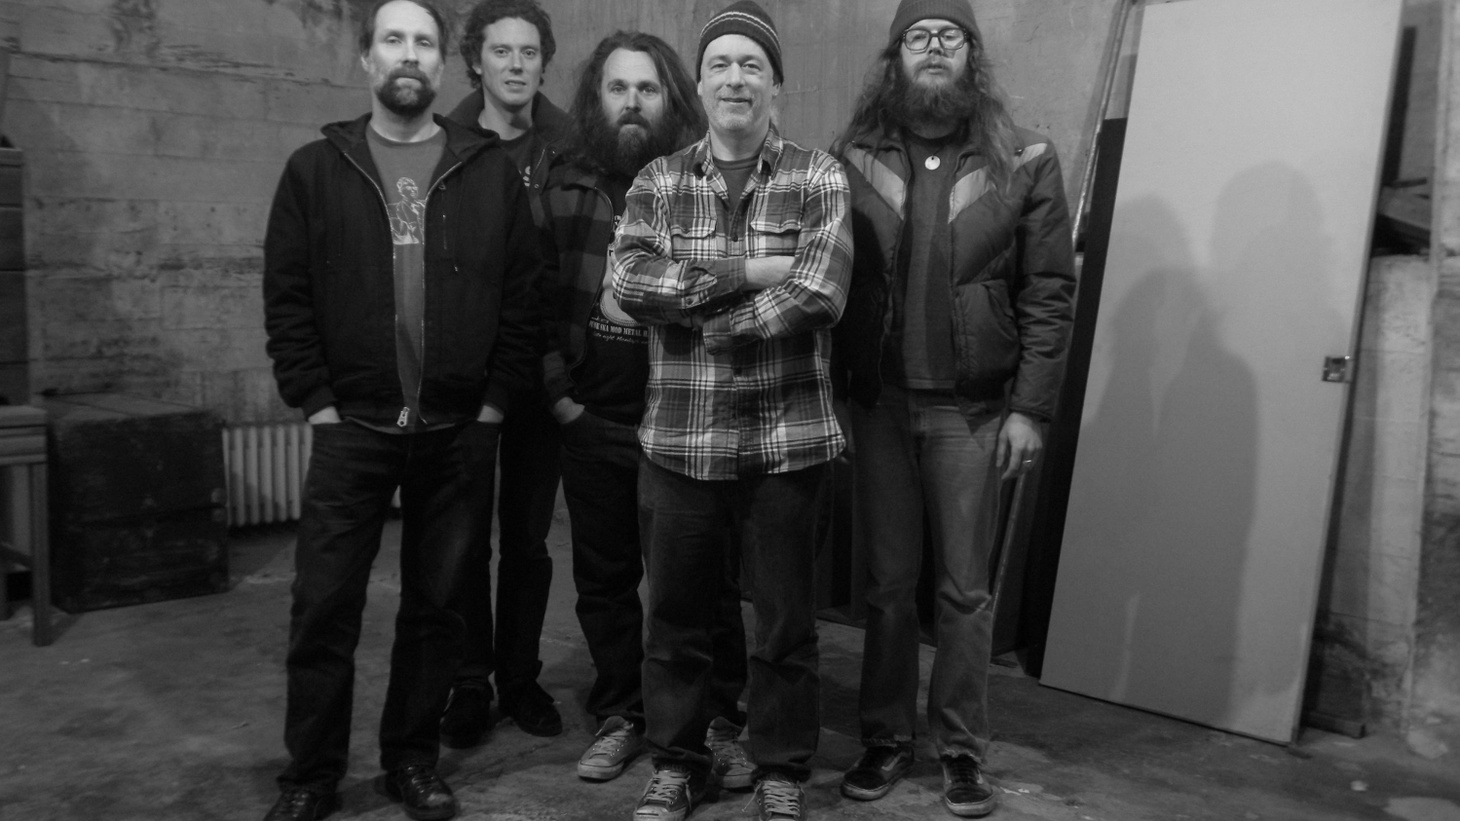 Longtime indie rock favorites Built to Spill return with their 8th album, another batch of sprawling guitar-driven tunes, this time with a new rhythm section.